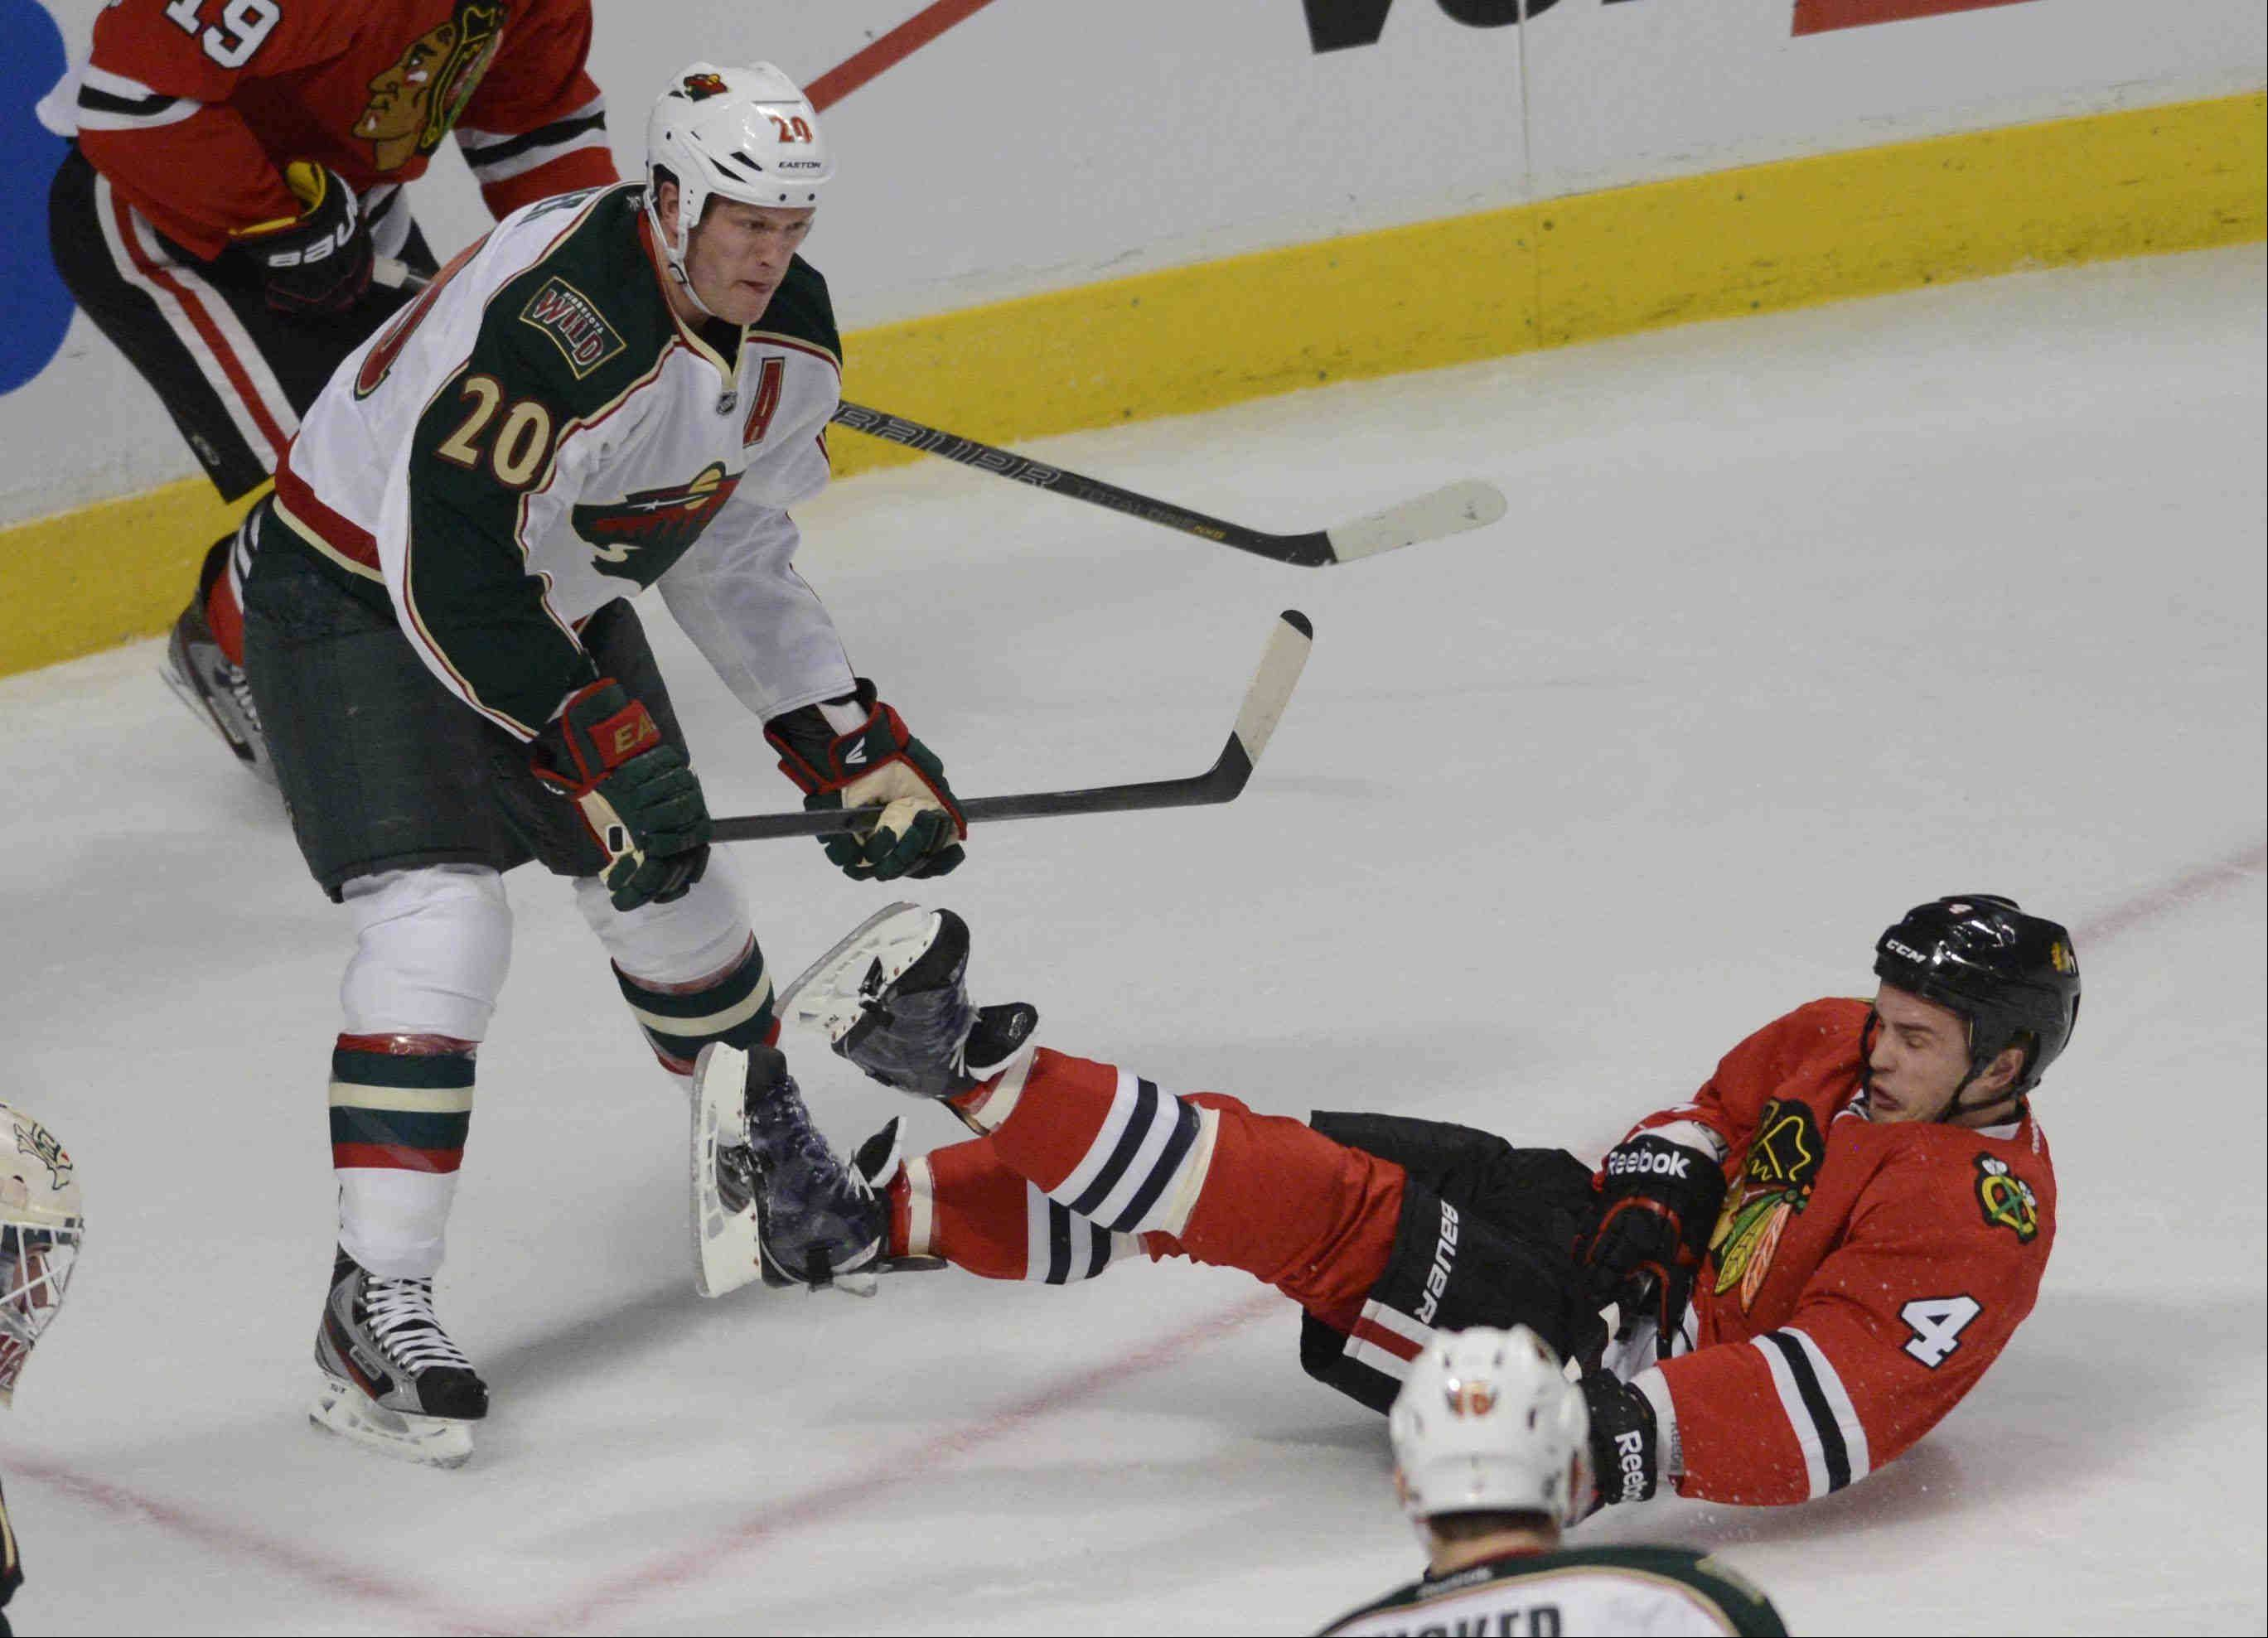 Although he got knocked off his skates here, Blackhawks defenseman Niklas Hjalmarsson and Duncan Keith had the upperhand against the Minnesota Wild's top line in Game 1, holding them scoreless.